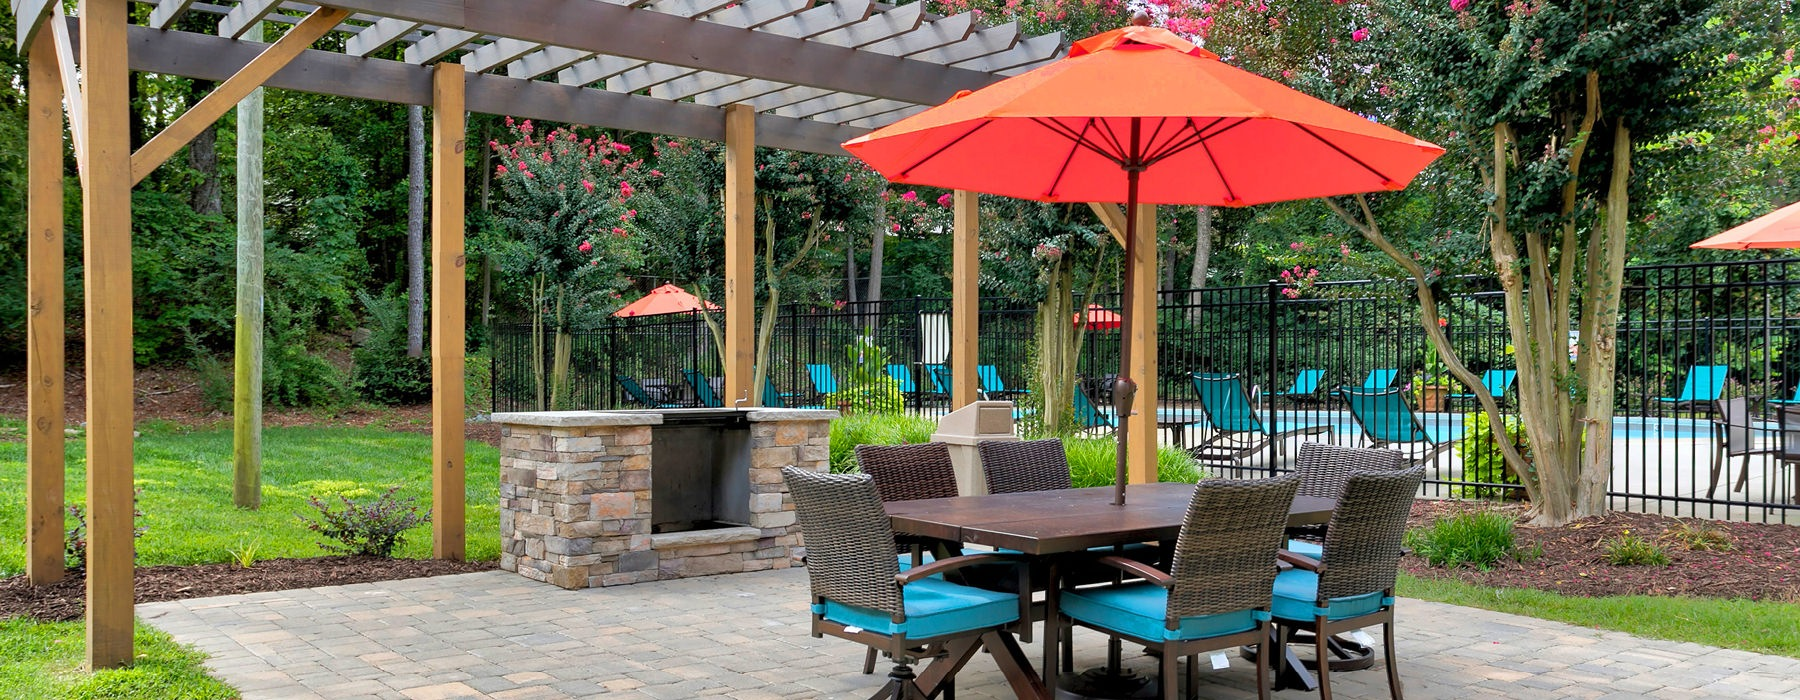 outdoor patio area with wicker chairs surrounding an umbrella covered table